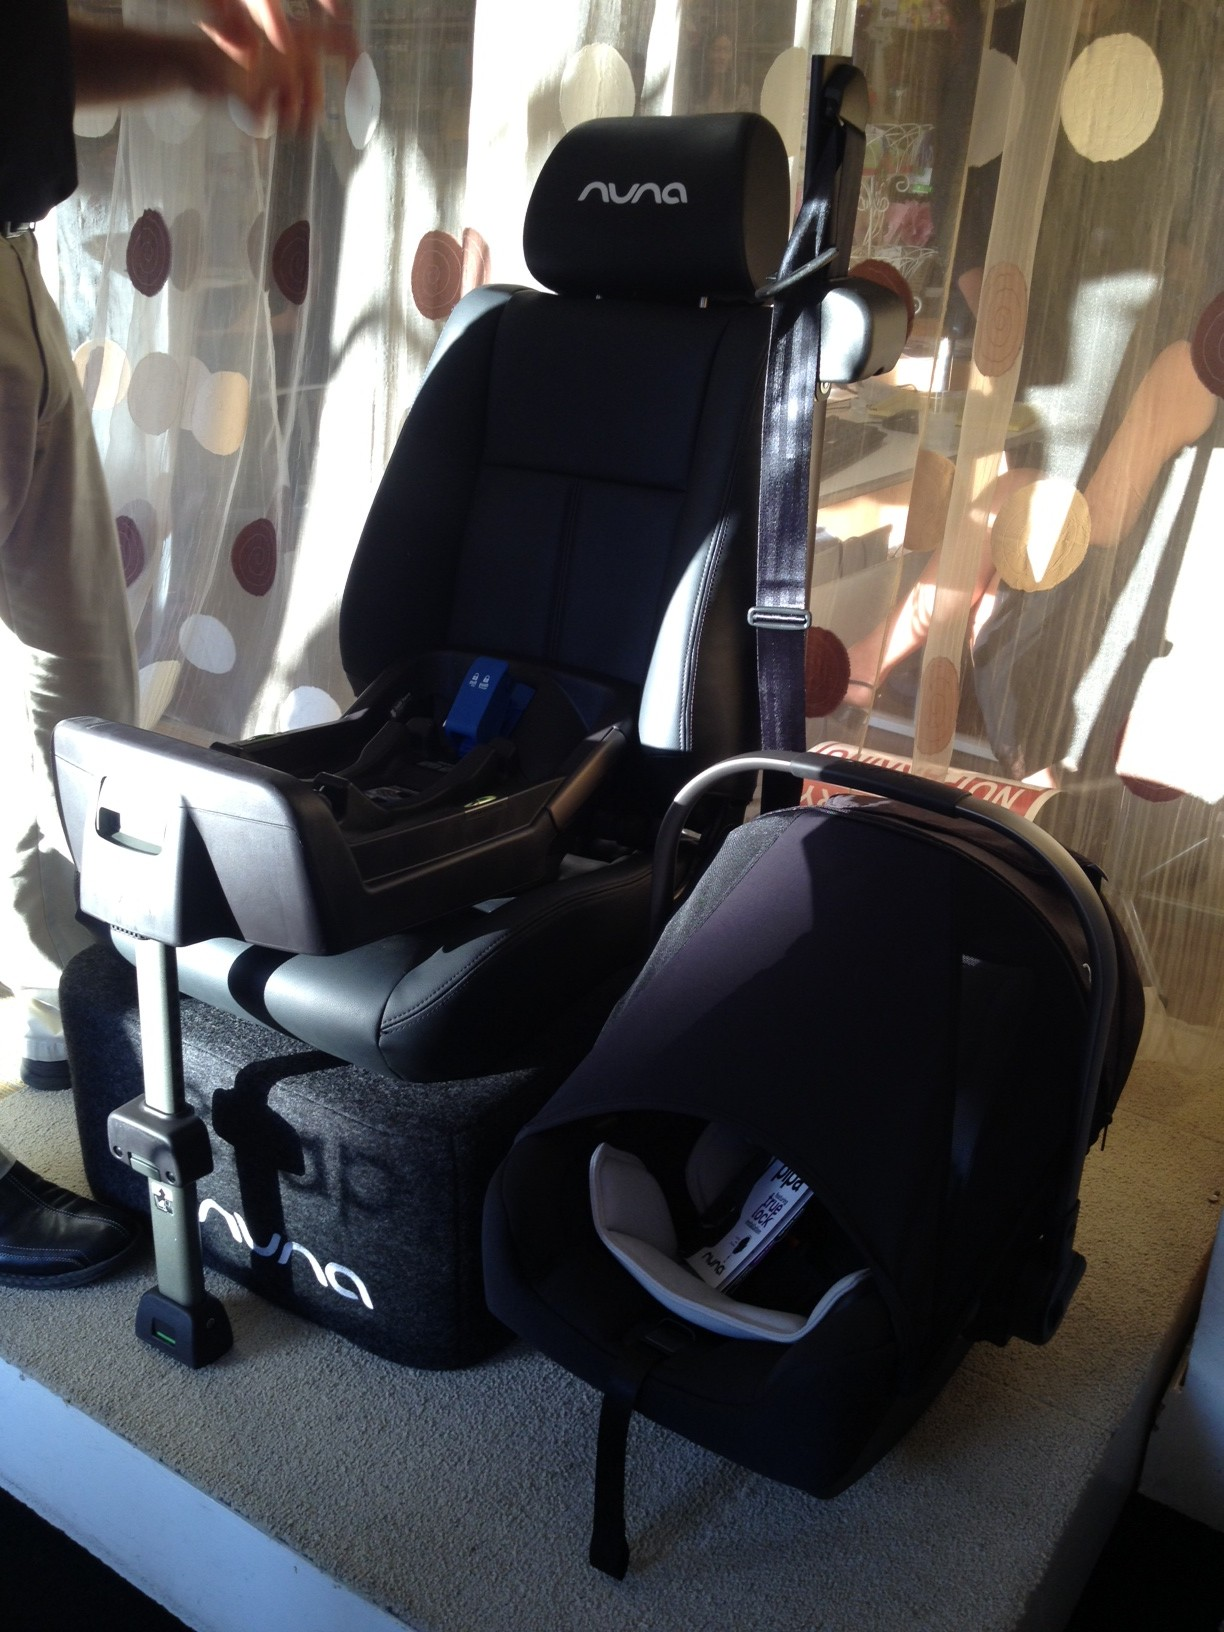 Ill Write A Full Review Of This Car Seat Once 2 Is Actually Here Now The Hubby Dying To Try Out Their Version Baby Bouncer Lounger Nuna